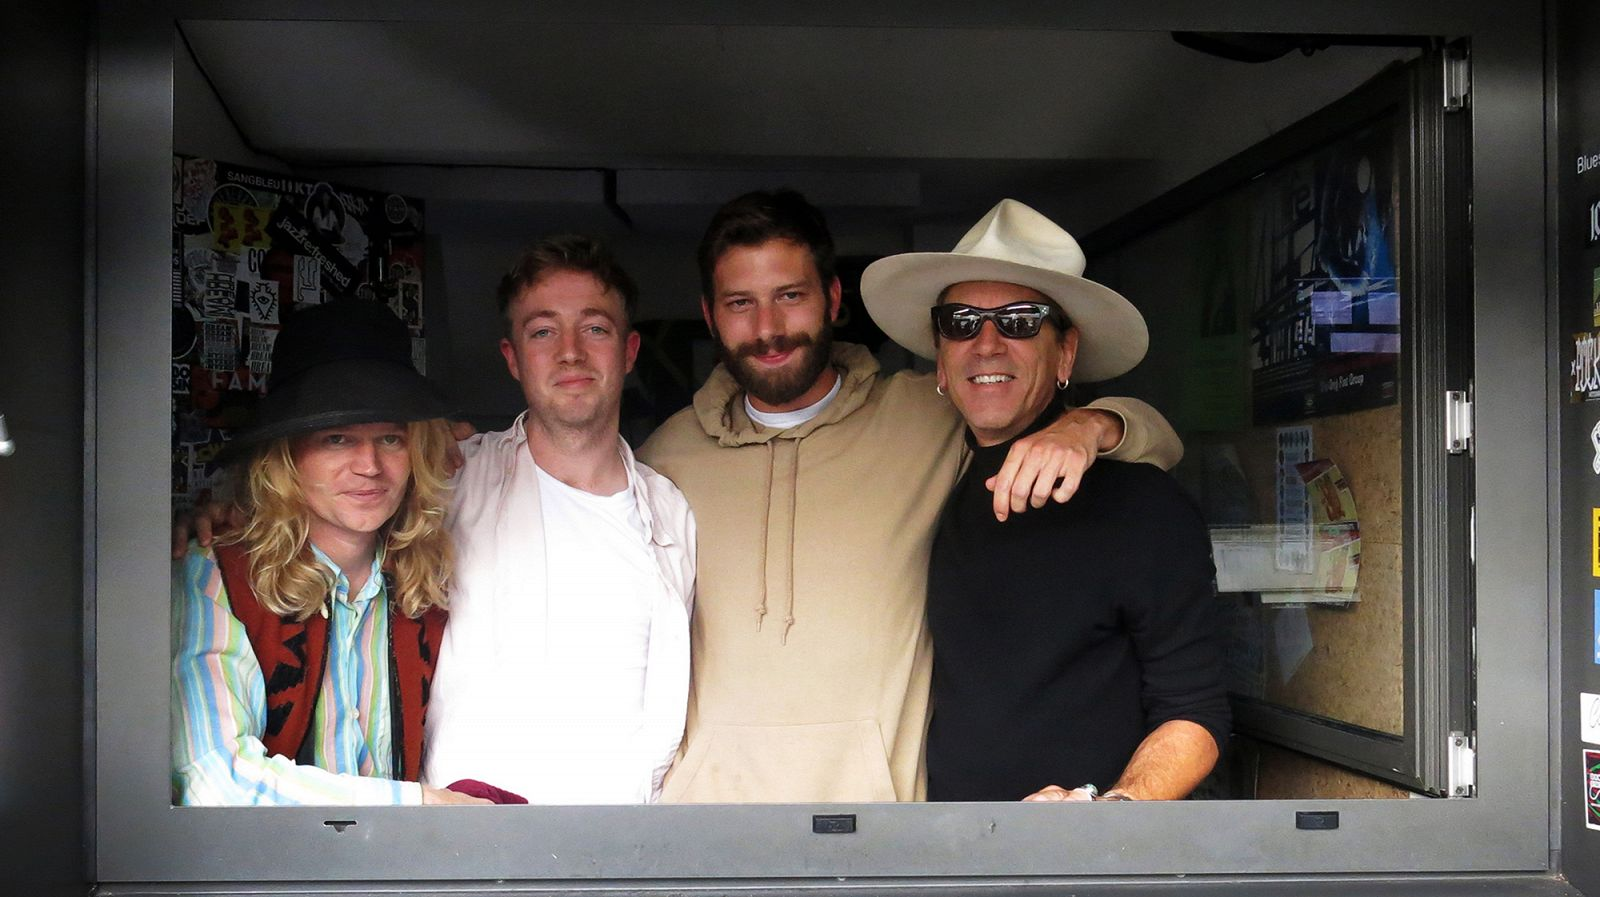 https://www.mixcloud.com/NTSRadio/mount-kimbie-william-basinski-connan-mockasin-15th-september-2015/ Episode Image